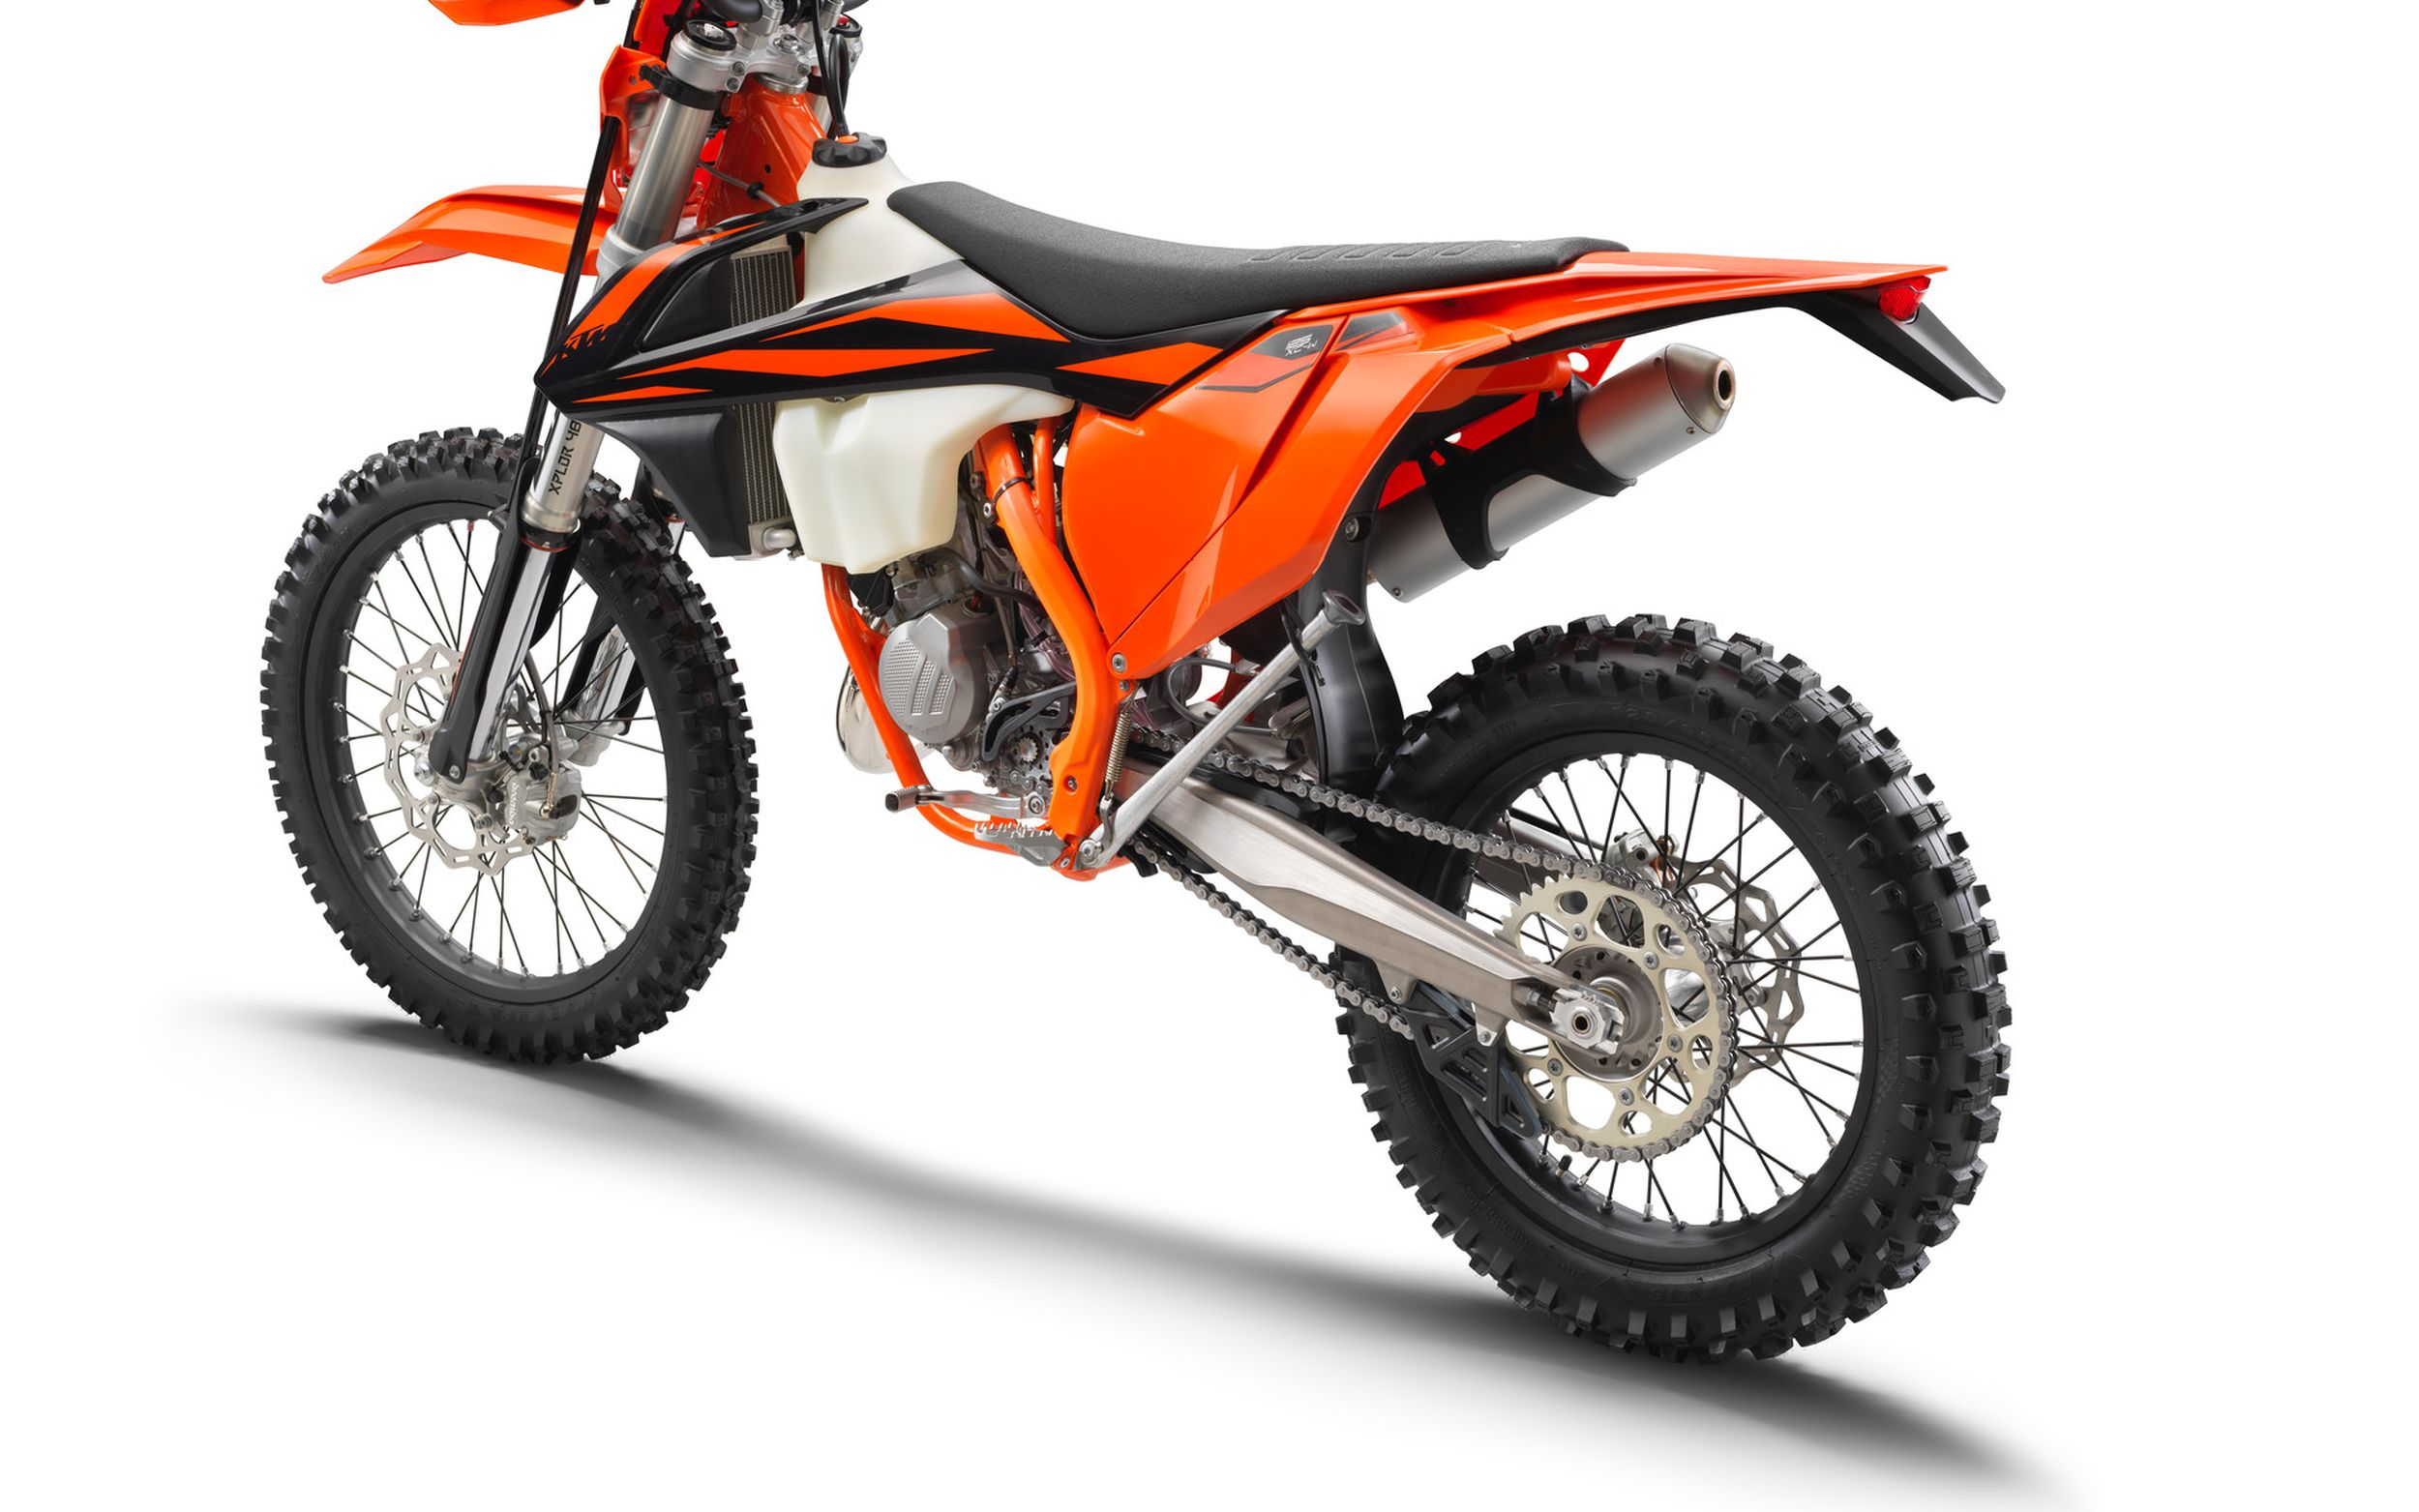 ktm 125 xc w alle technischen daten zum modell 125 xc w. Black Bedroom Furniture Sets. Home Design Ideas